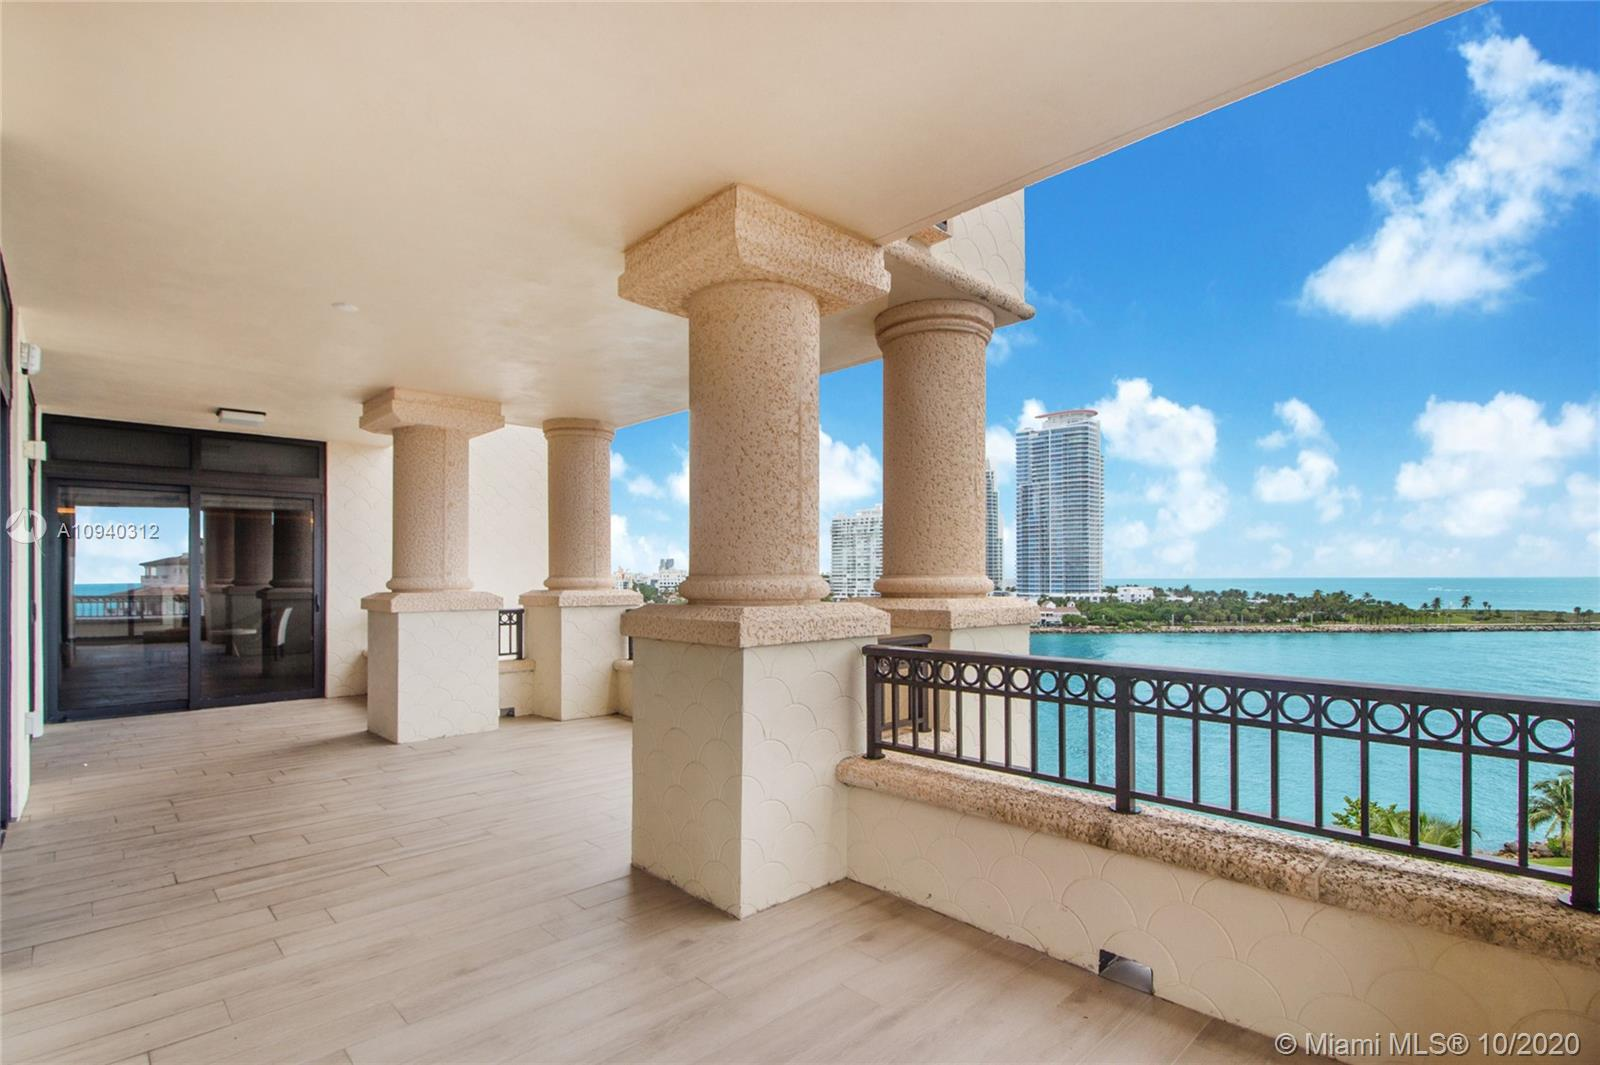 7085 Fisher Island Dr, Unit #7085 Luxury Real Estate